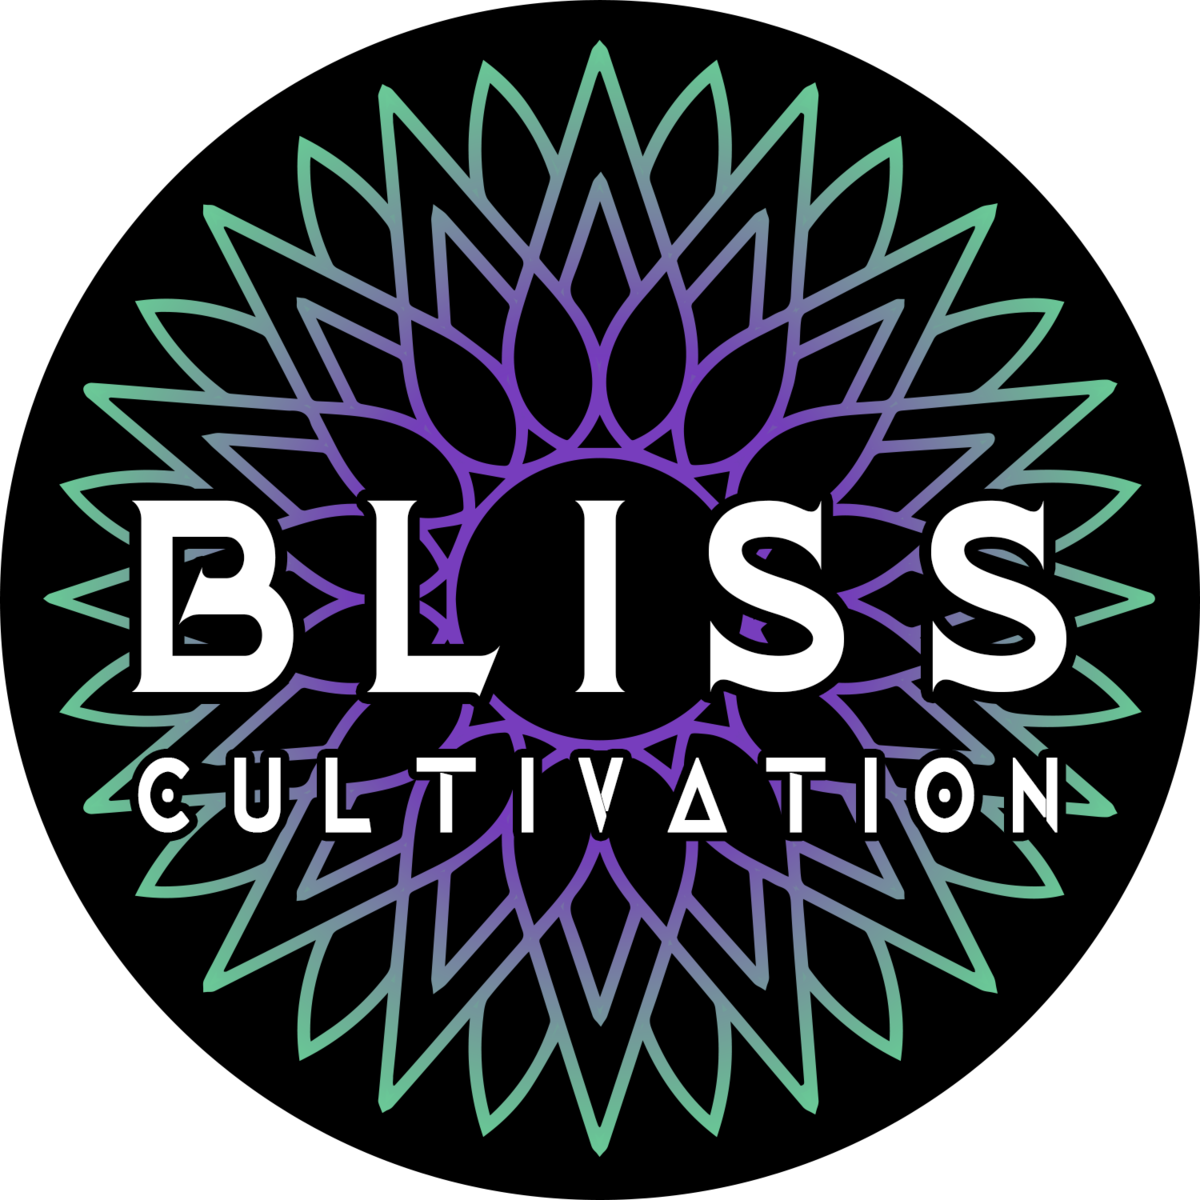 Bliss Cultivation